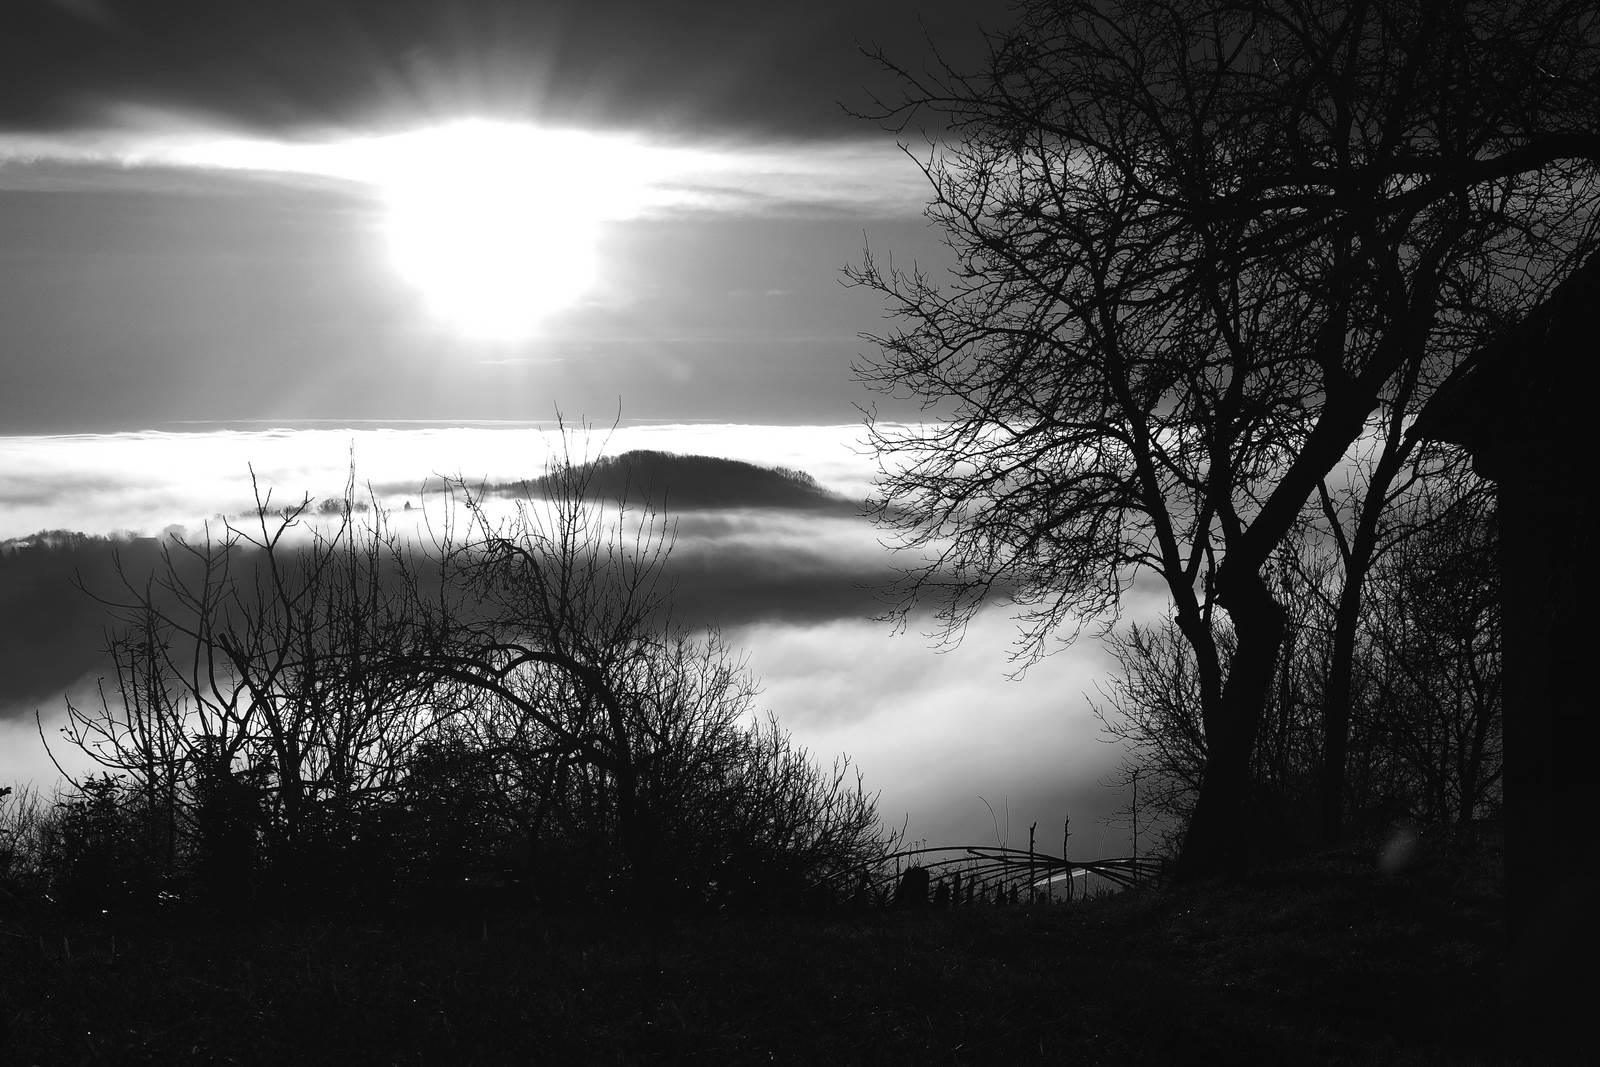 Morning Clouds - bw